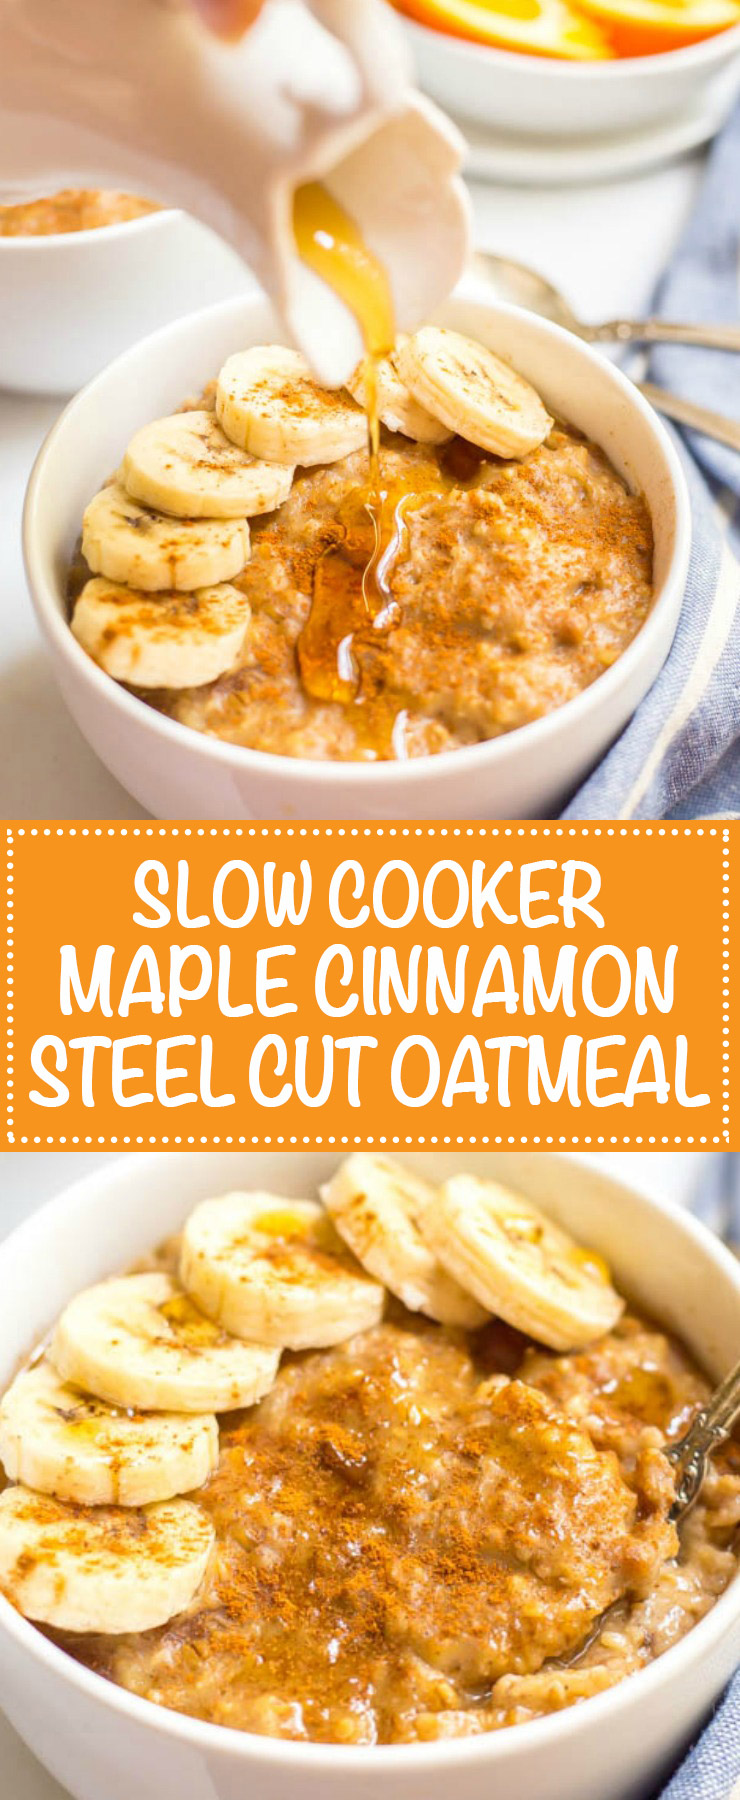 Slow cooker maple cinnamon oatmeal is perfect for busy mornings! Take a few minutes to prep the night before and a creamy, rich, flavorful oatmeal is waiting for you in the morning! | www.familyfoodonthetable.com